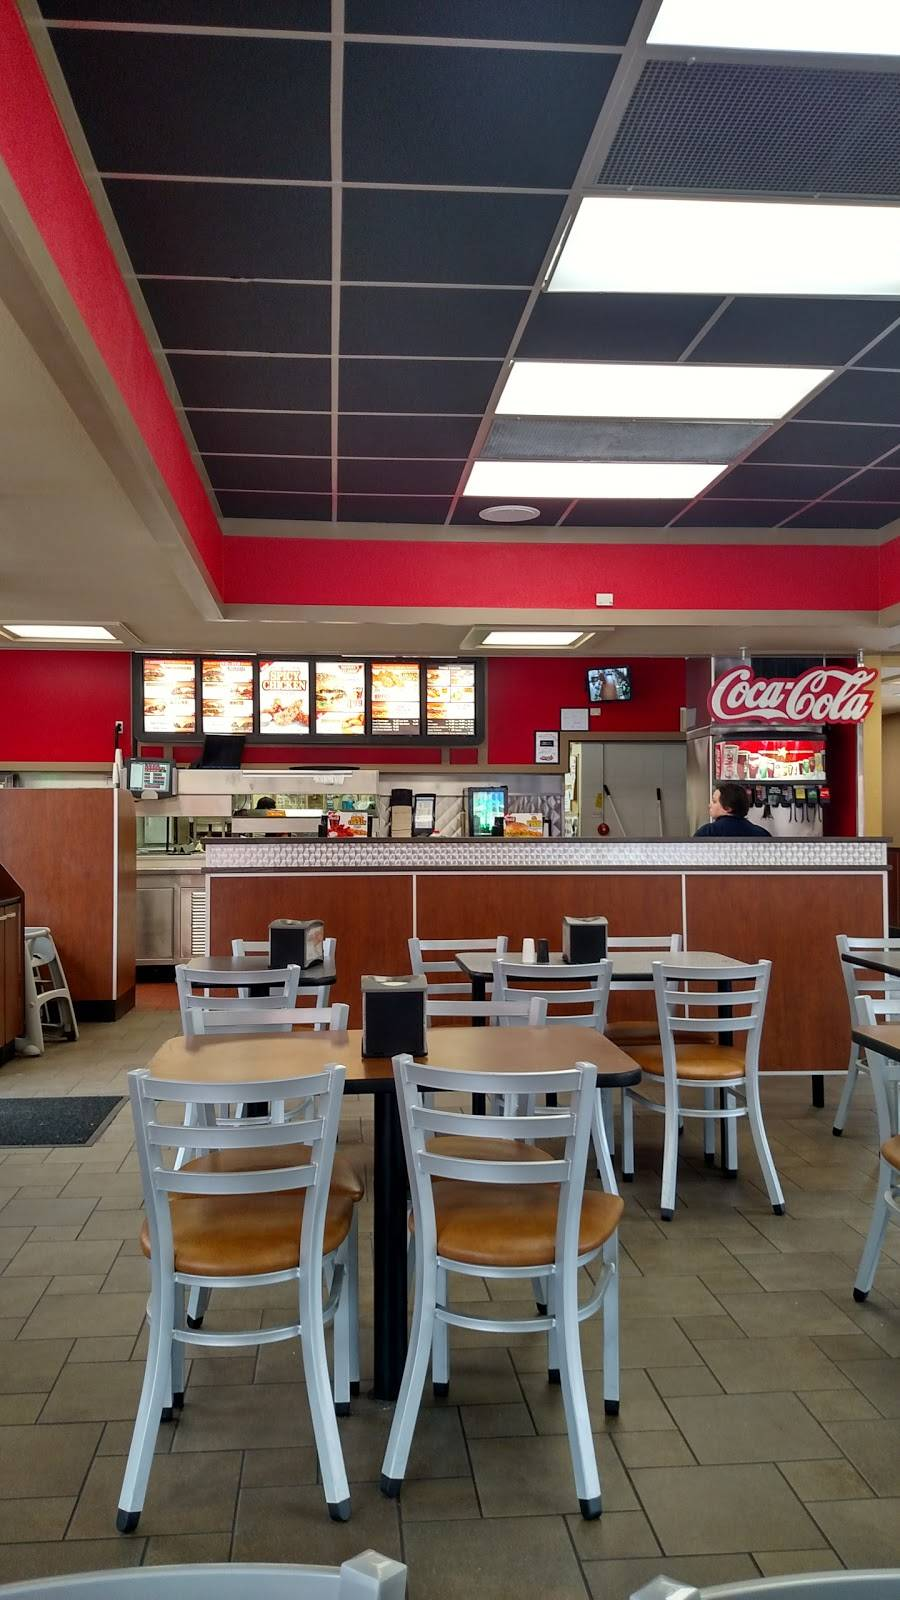 Hardees | restaurant | 9433 Hwy 805, Jenkins, KY 41537, USA | 6068322641 OR +1 606-832-2641